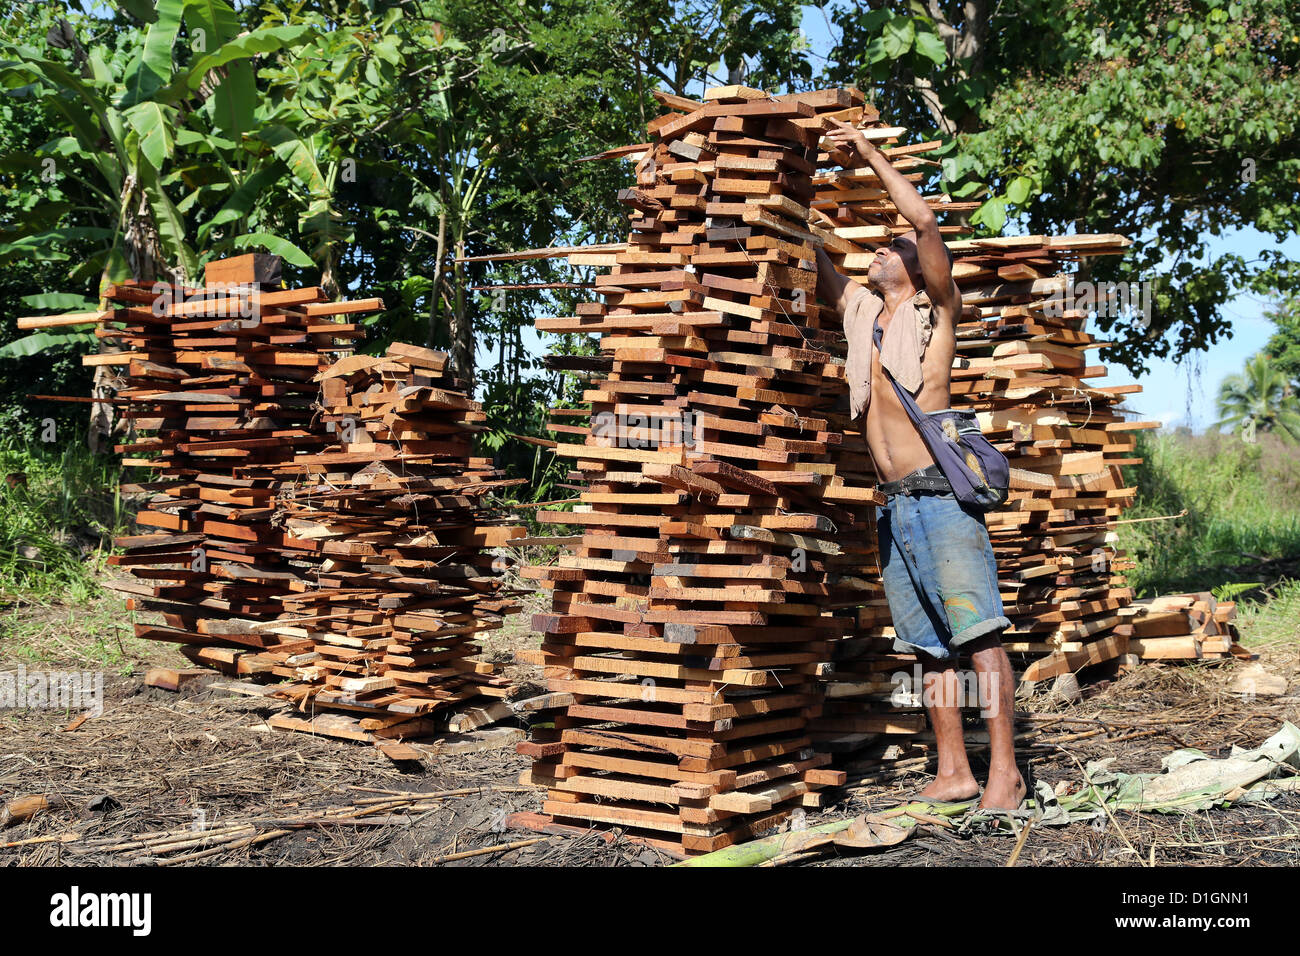 Man stacks firewood for sale, wastes from a sawmill in Madang province, Papua New Guinea - Stock Image